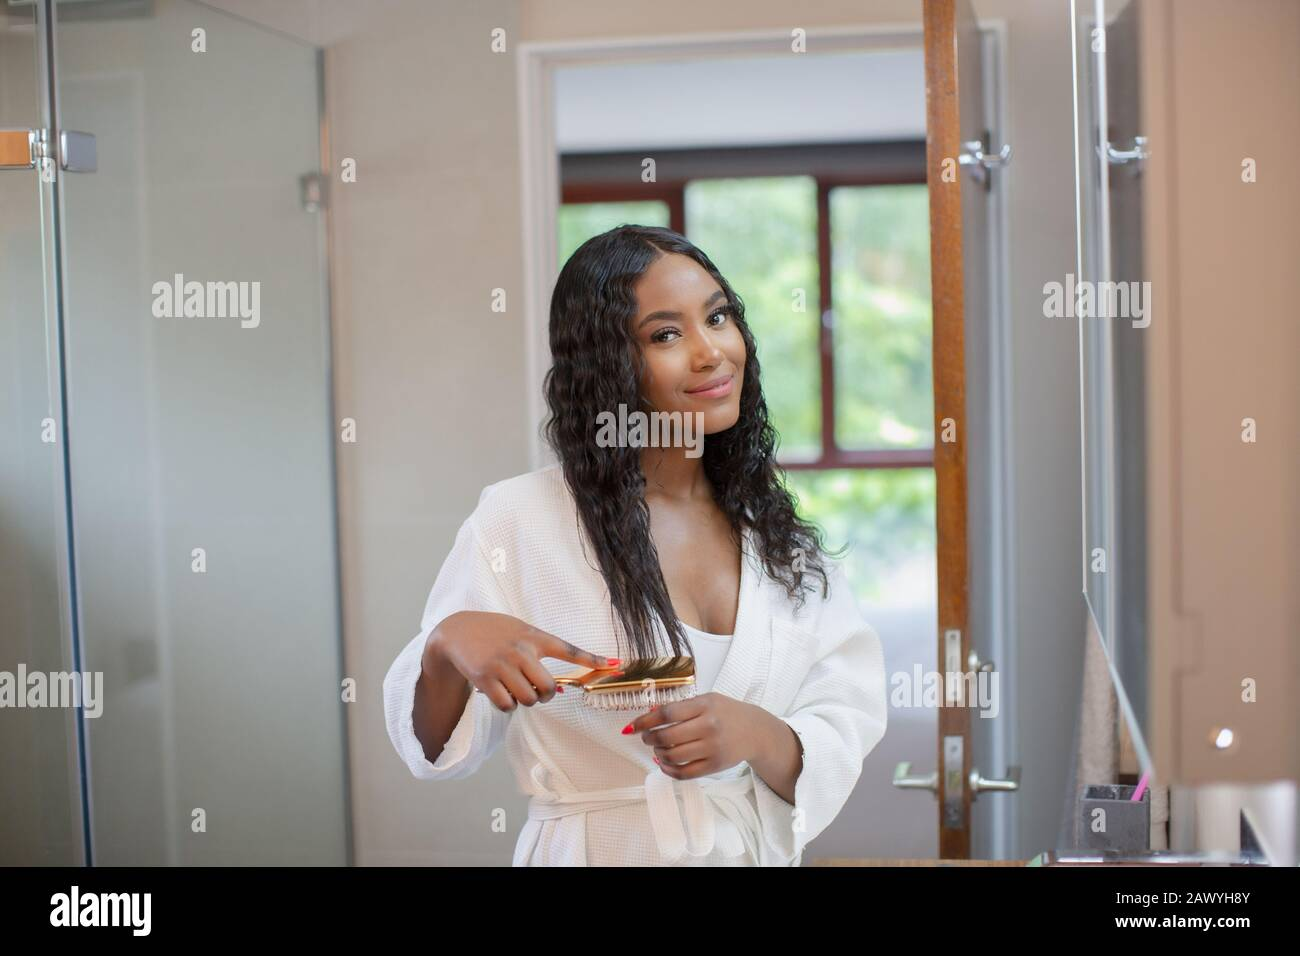 Portrait beautiful smiling young woman brushing hair in bathroom Stock Photo